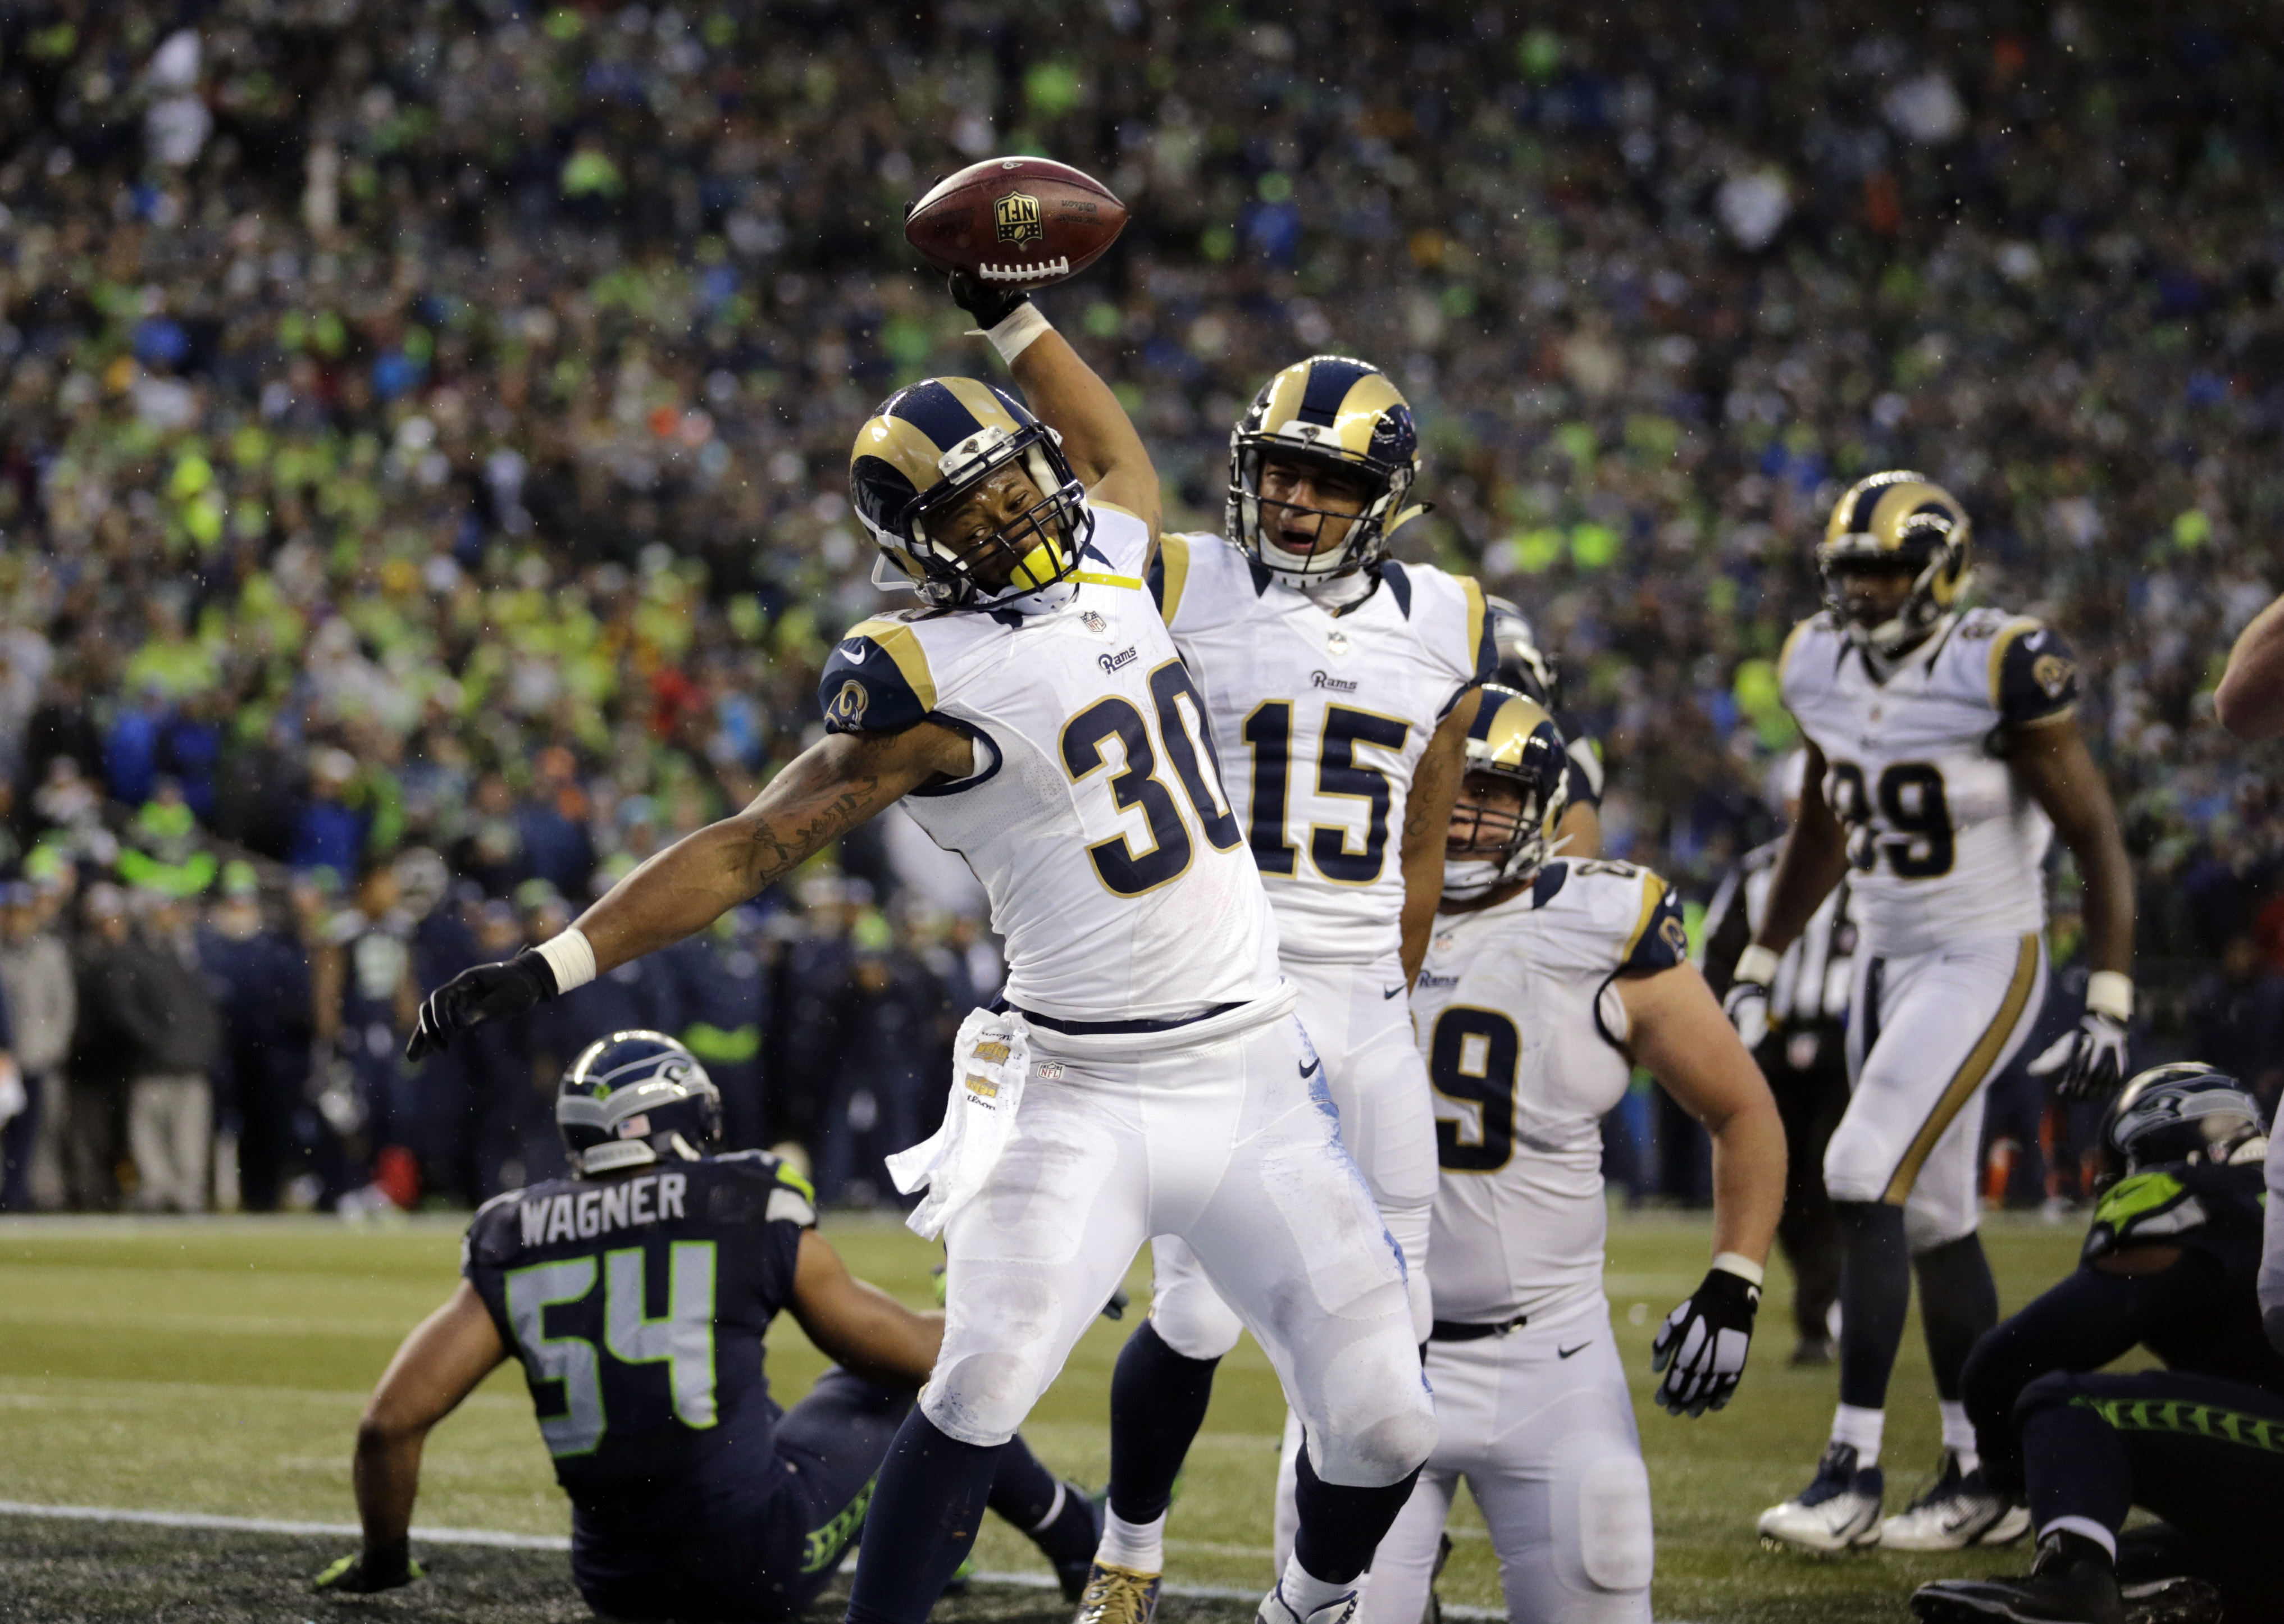 St. Louis Rams' Todd Gurley (30) spikes the ball after scoring a touchdown on a run against the Seattle Seahawks in the second half of an NFL football game, Sunday, Dec. 27, 2015, in Seattle. (AP Photo/Stephen Brashear)